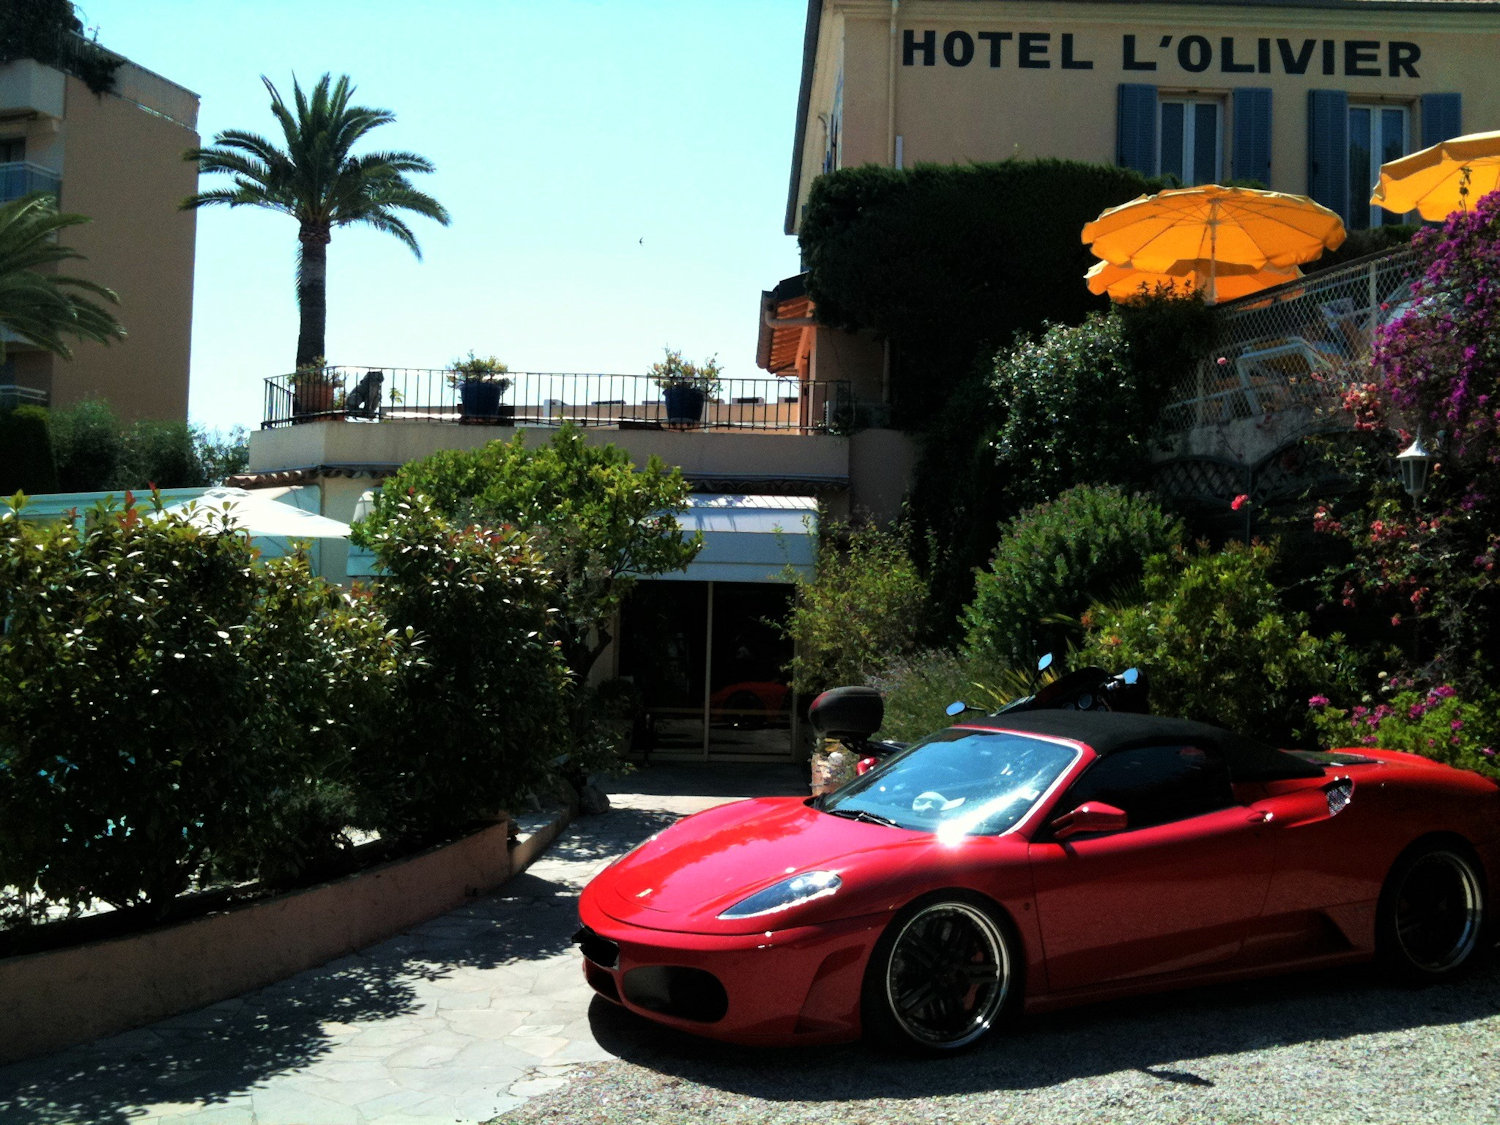 Hotel Olivier Cannes